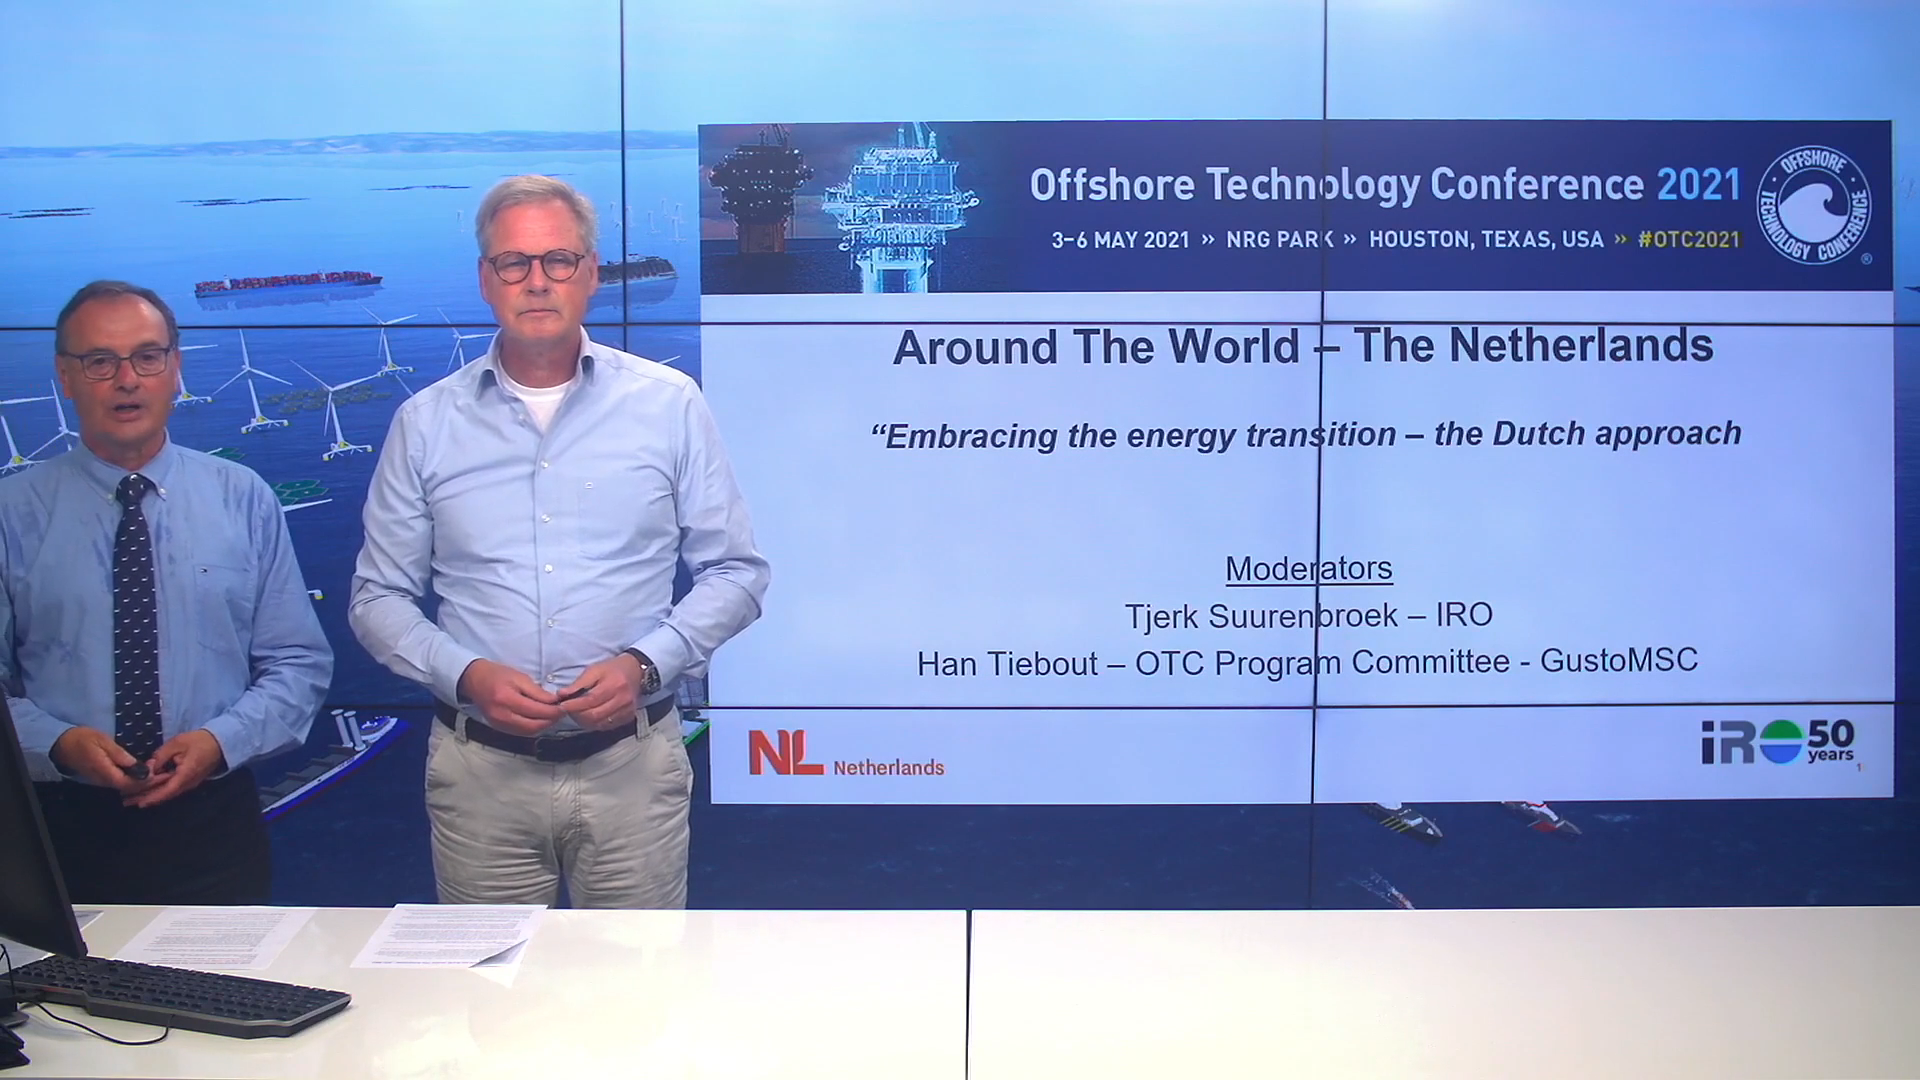 The Netherlands presented the latest offshore trends in OTC 2021